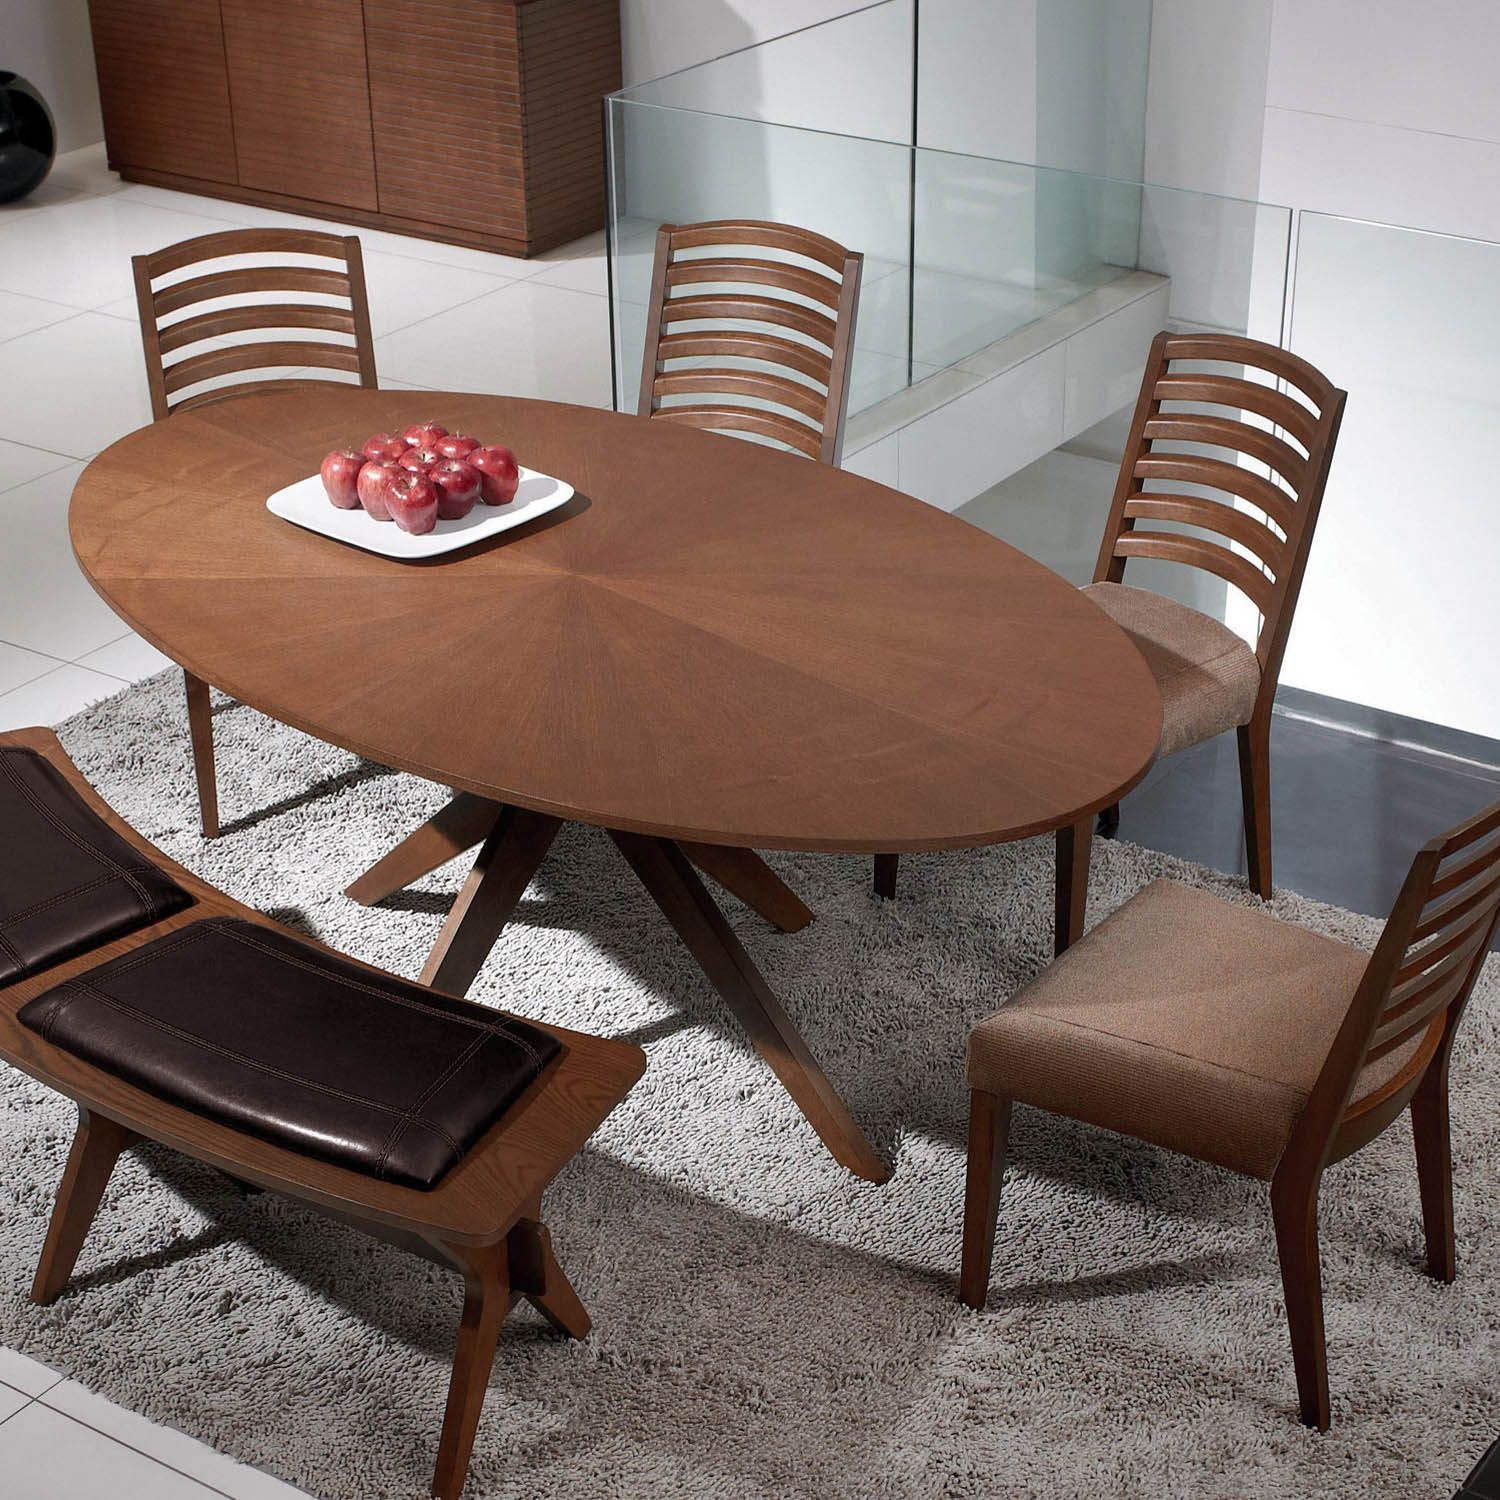 Rooms To Go Dining Table: Oval Dining Table In Walnut Wood